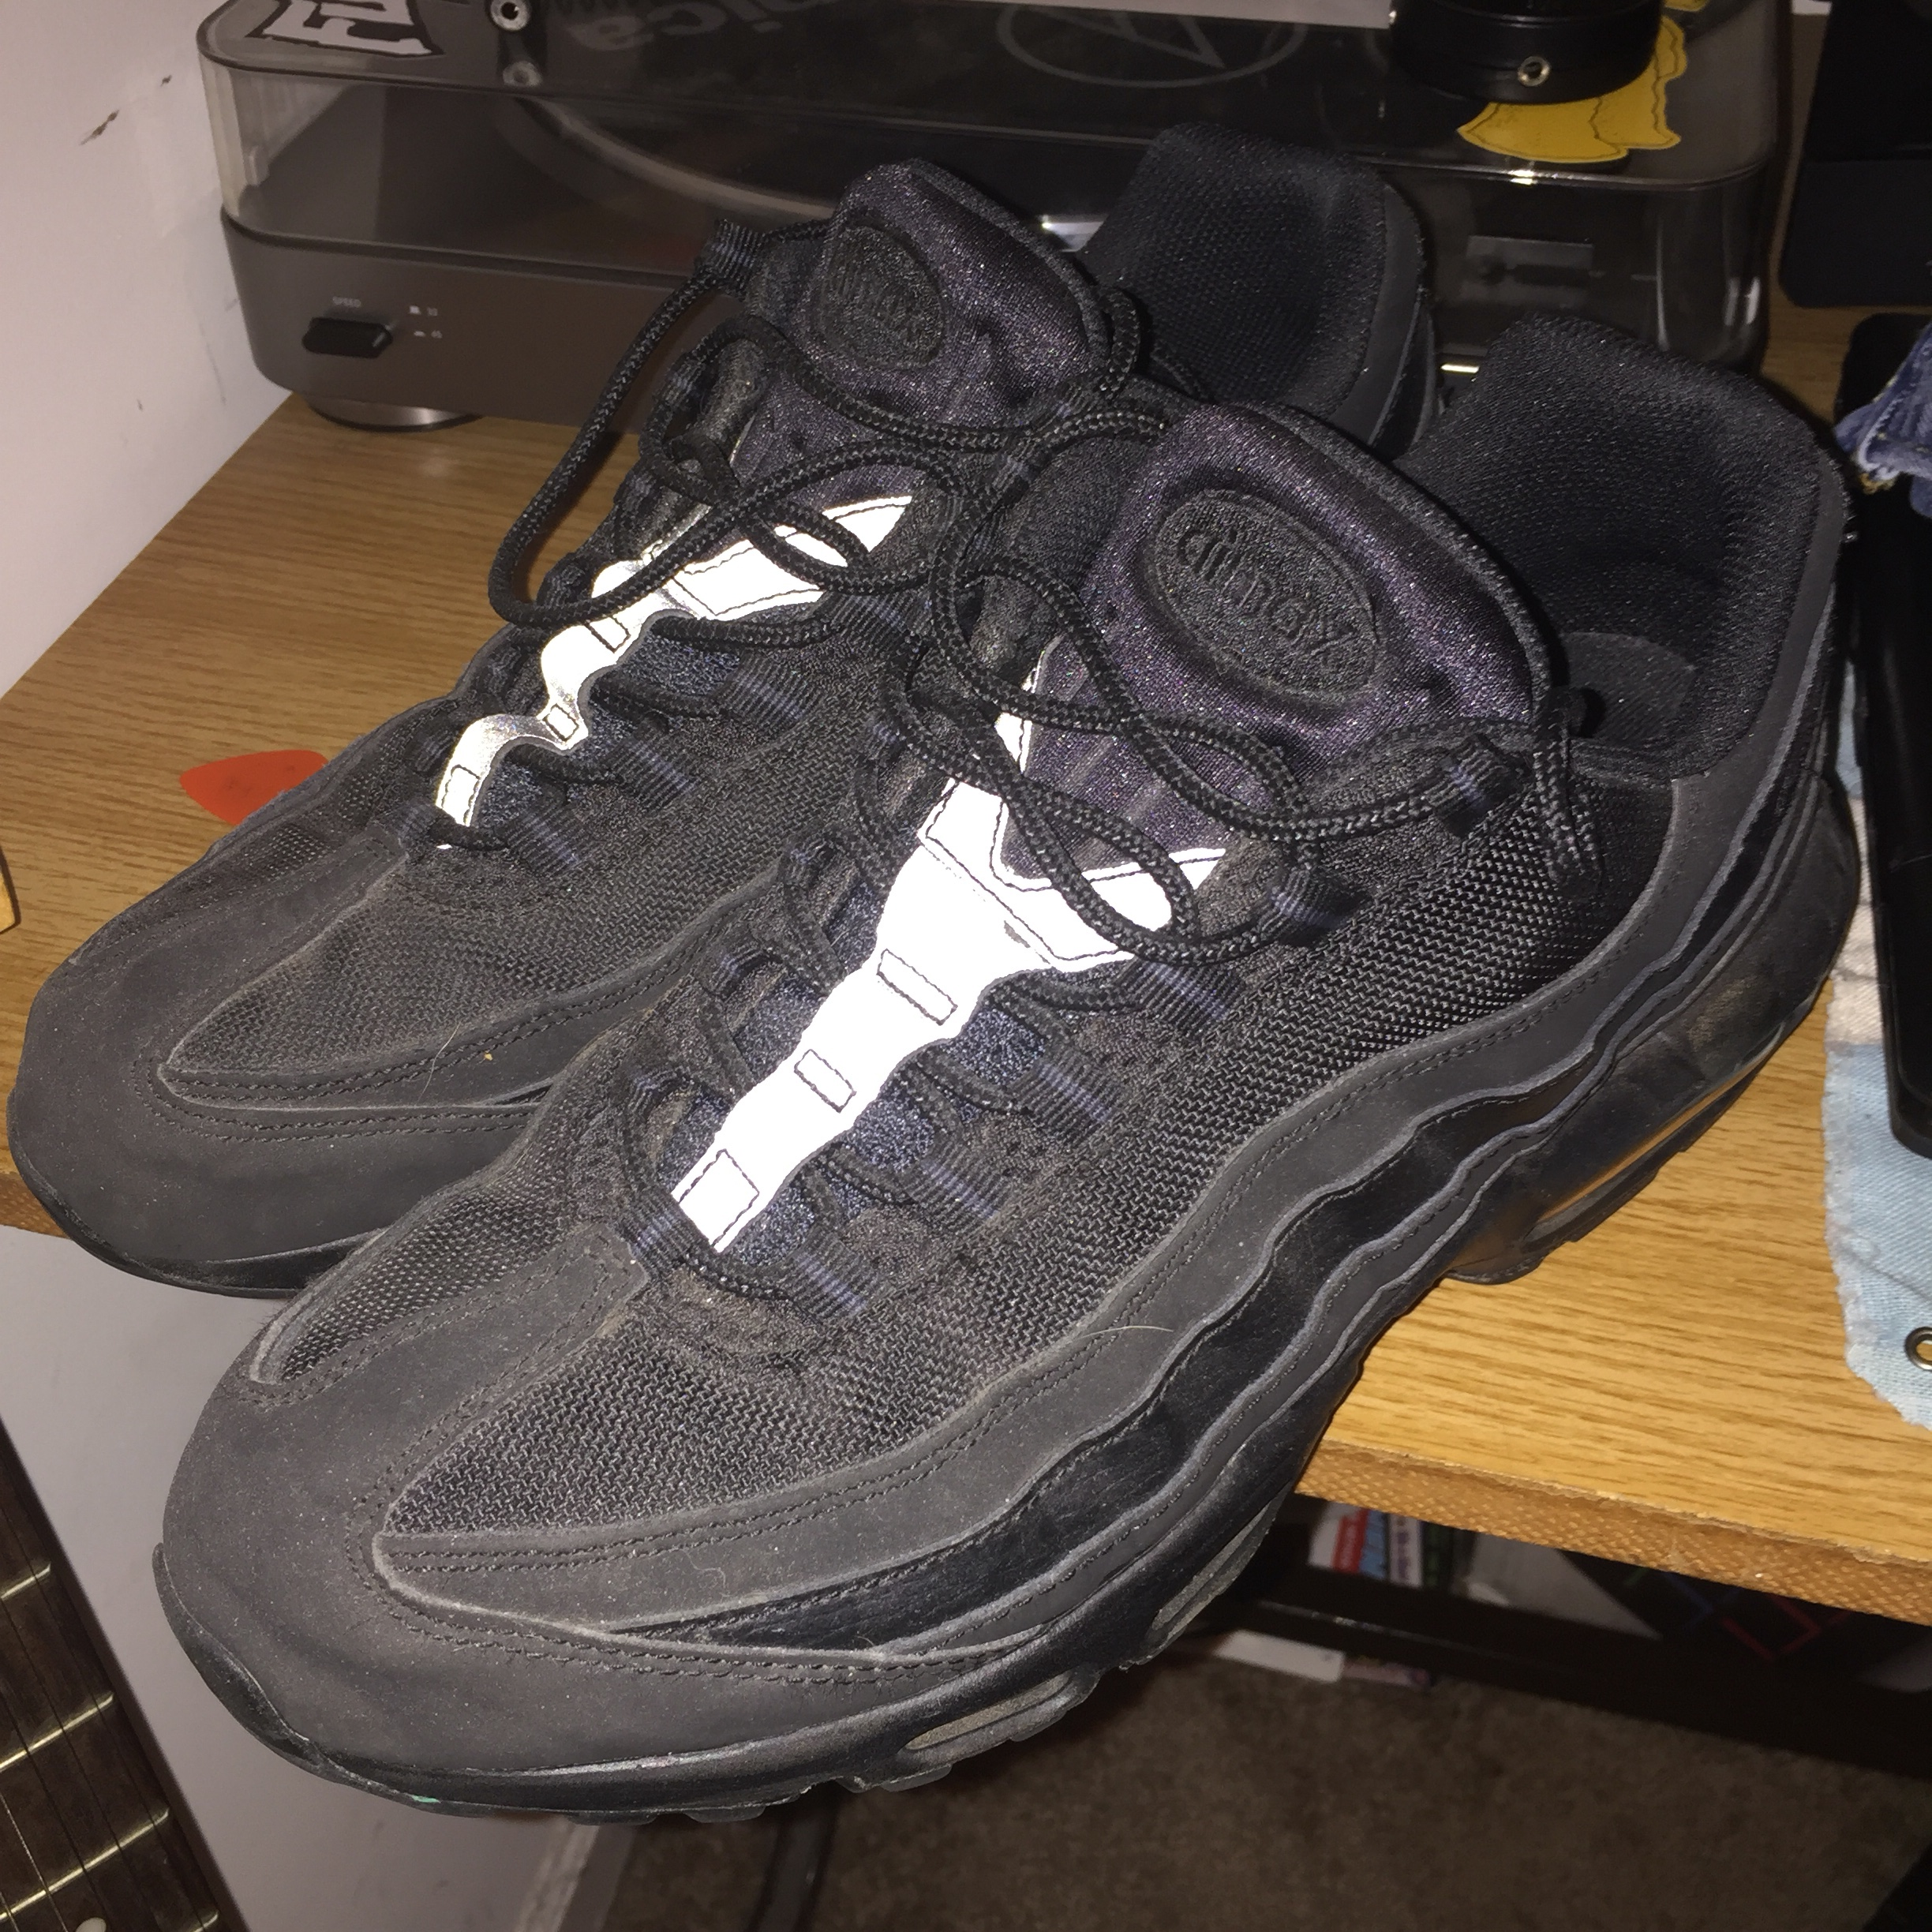 reputable site ebdd2 0120c Nike Air Max 95 triple black with 3M accents, size... - Depop